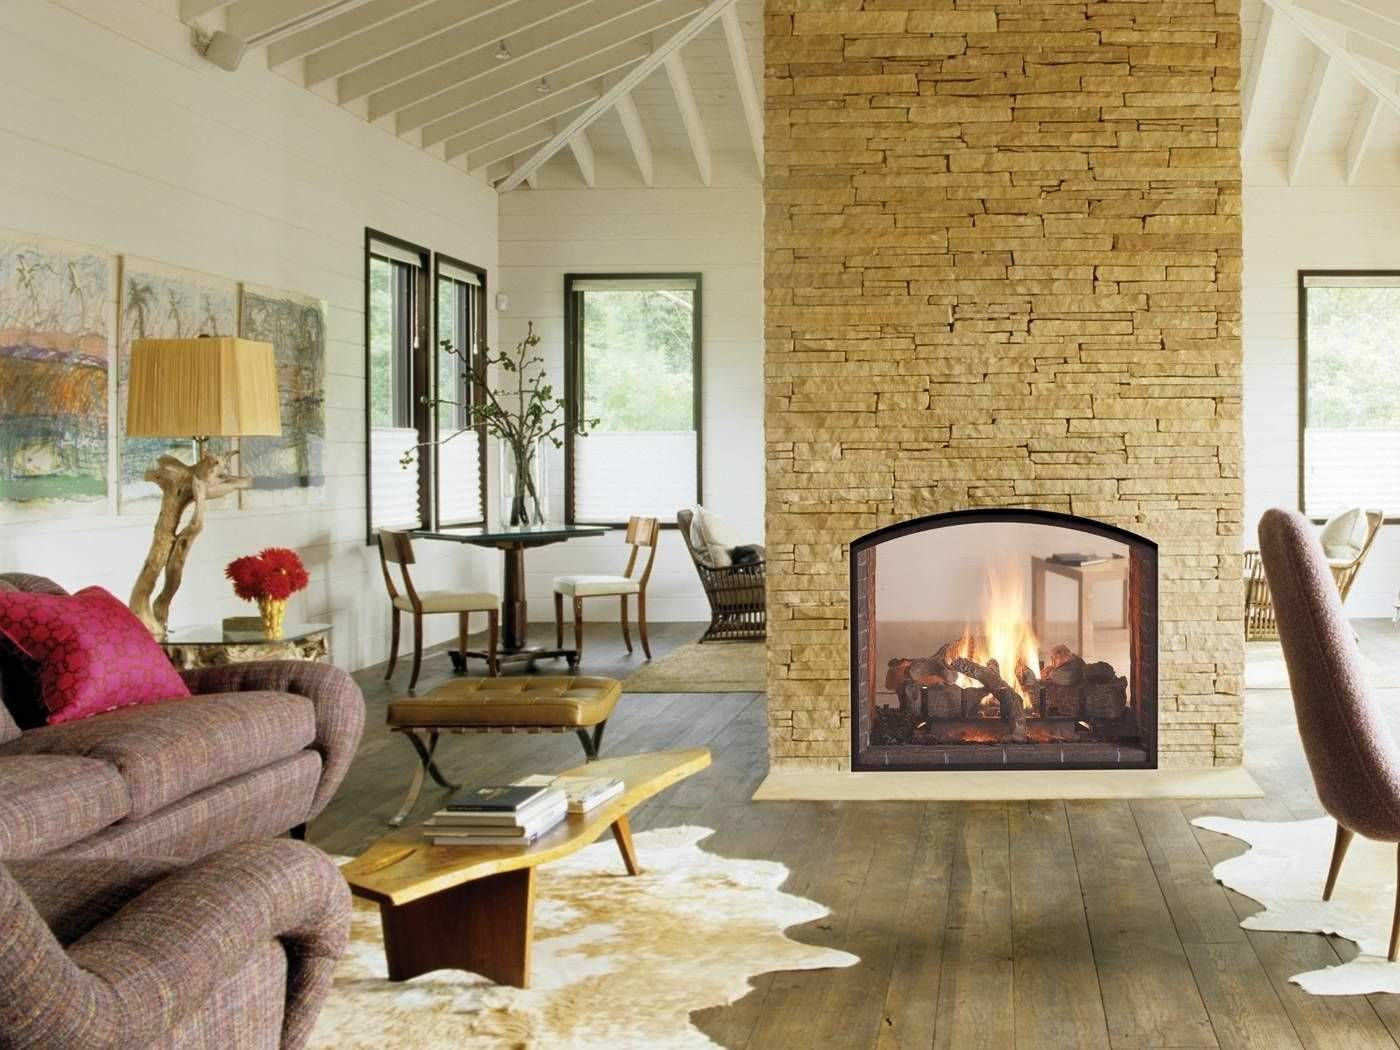 Corner Fireplaces Flummox Many People But If You Buy Or Re